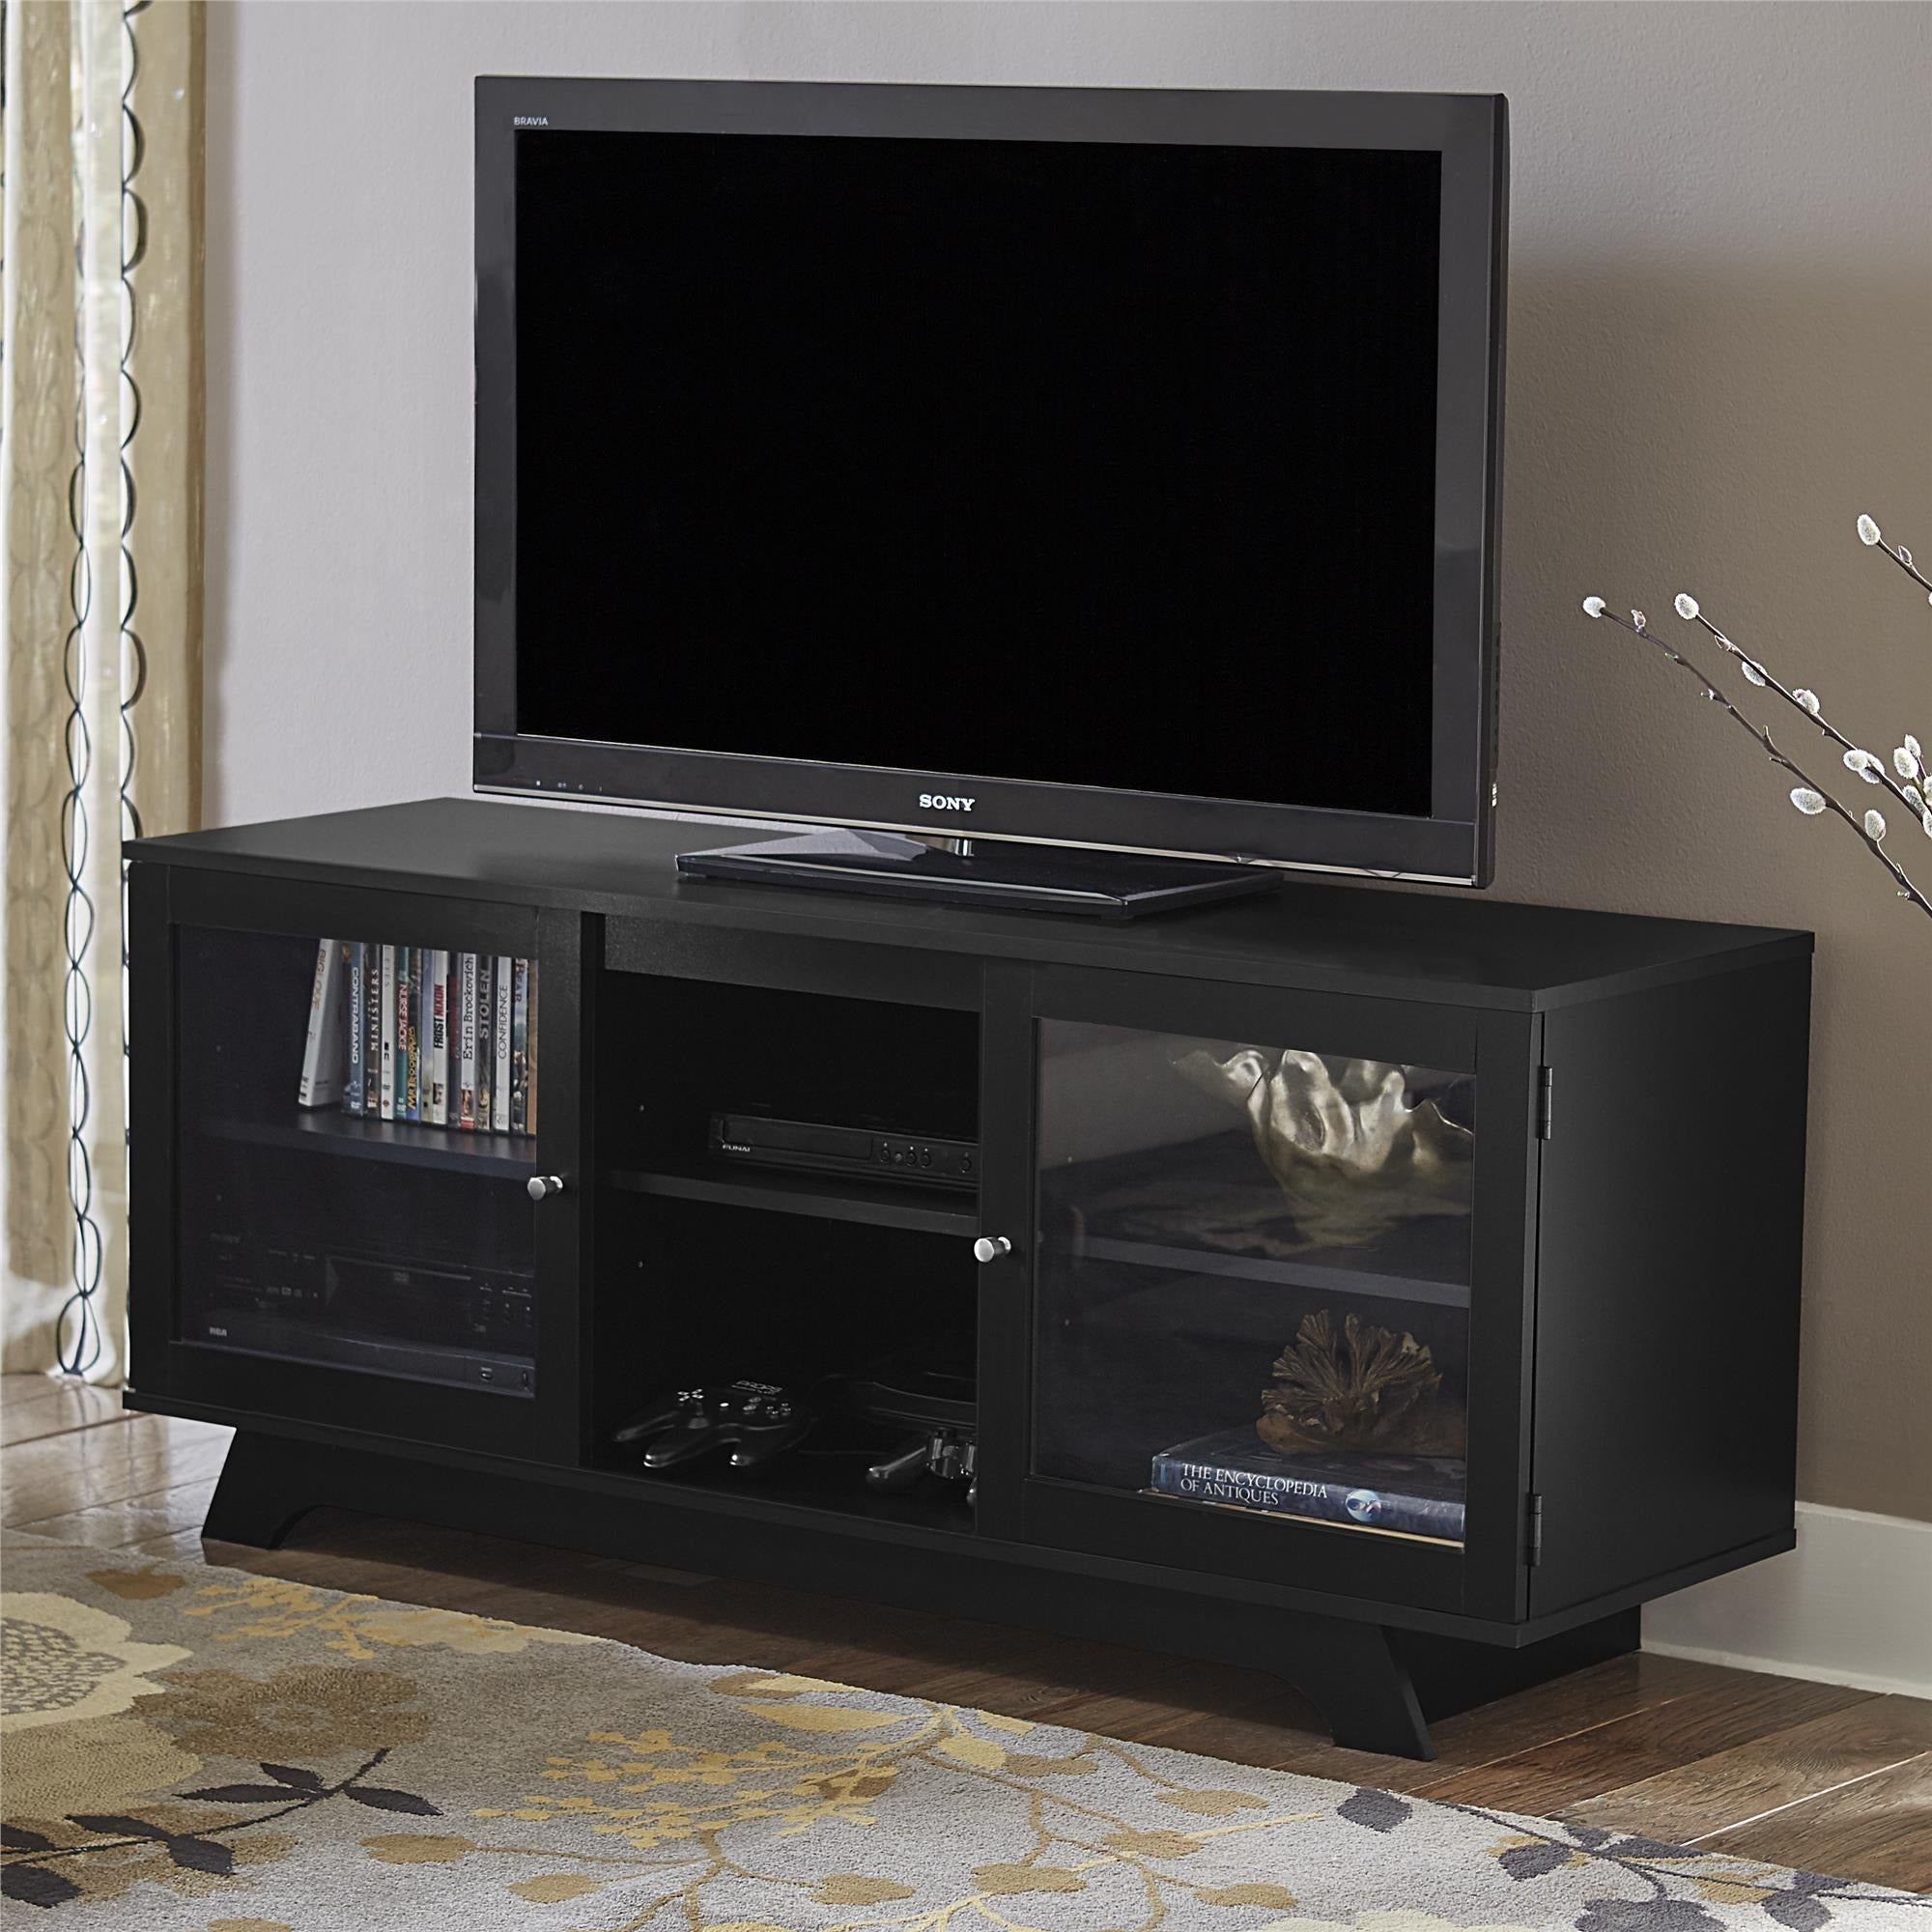 Shop ameriwood home englewood black 55 inch tv stand free shipping today overstock com 12039211